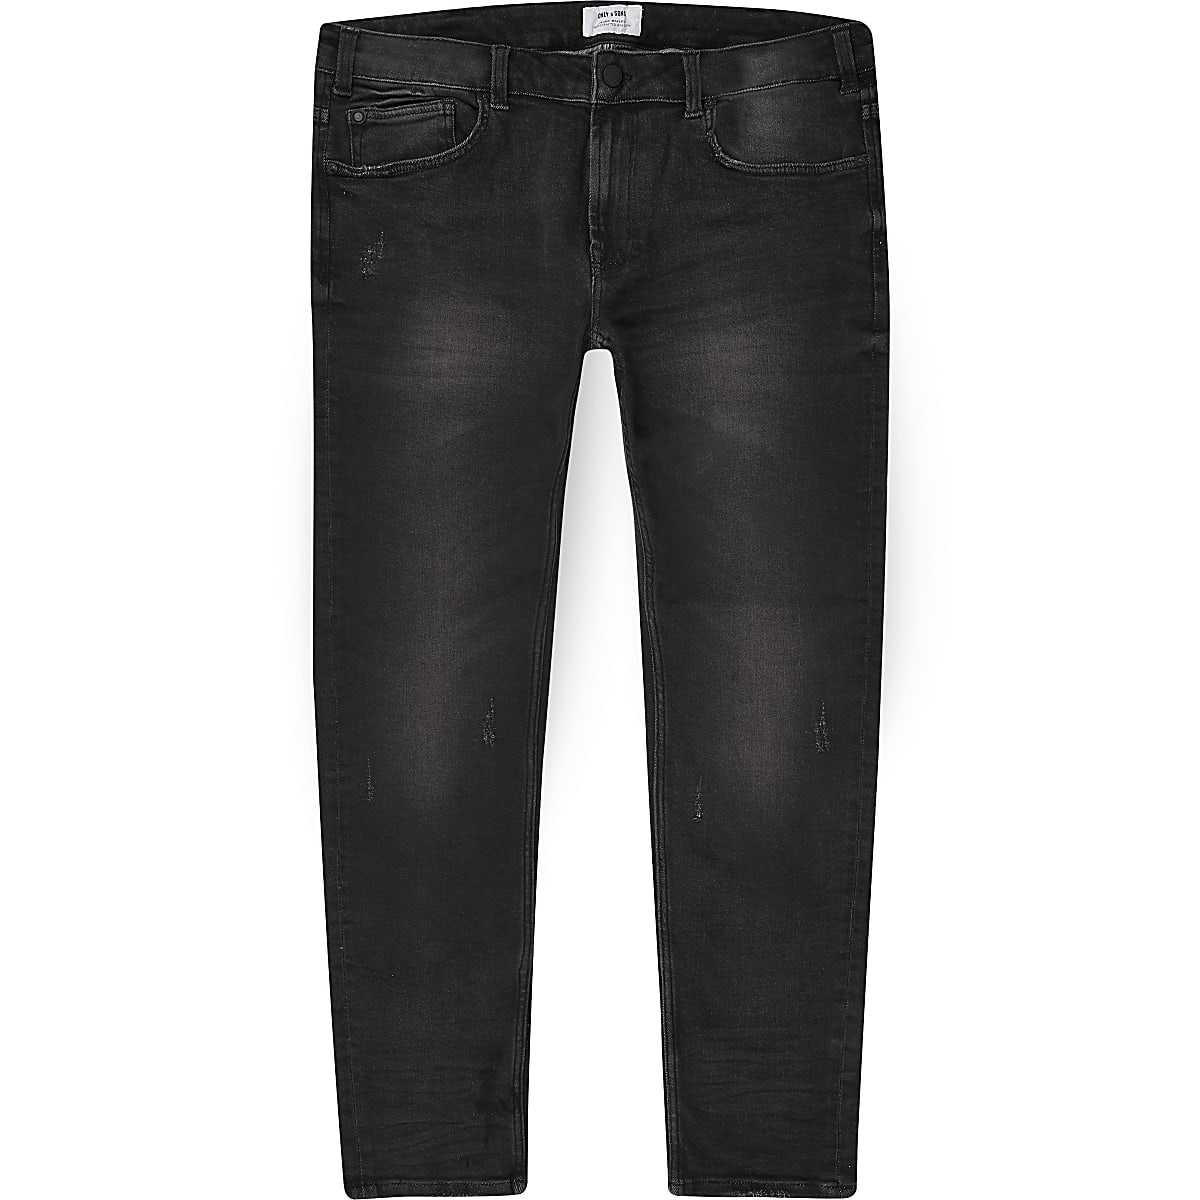 Only & Sons – Big and Tall – Jean skinny noir